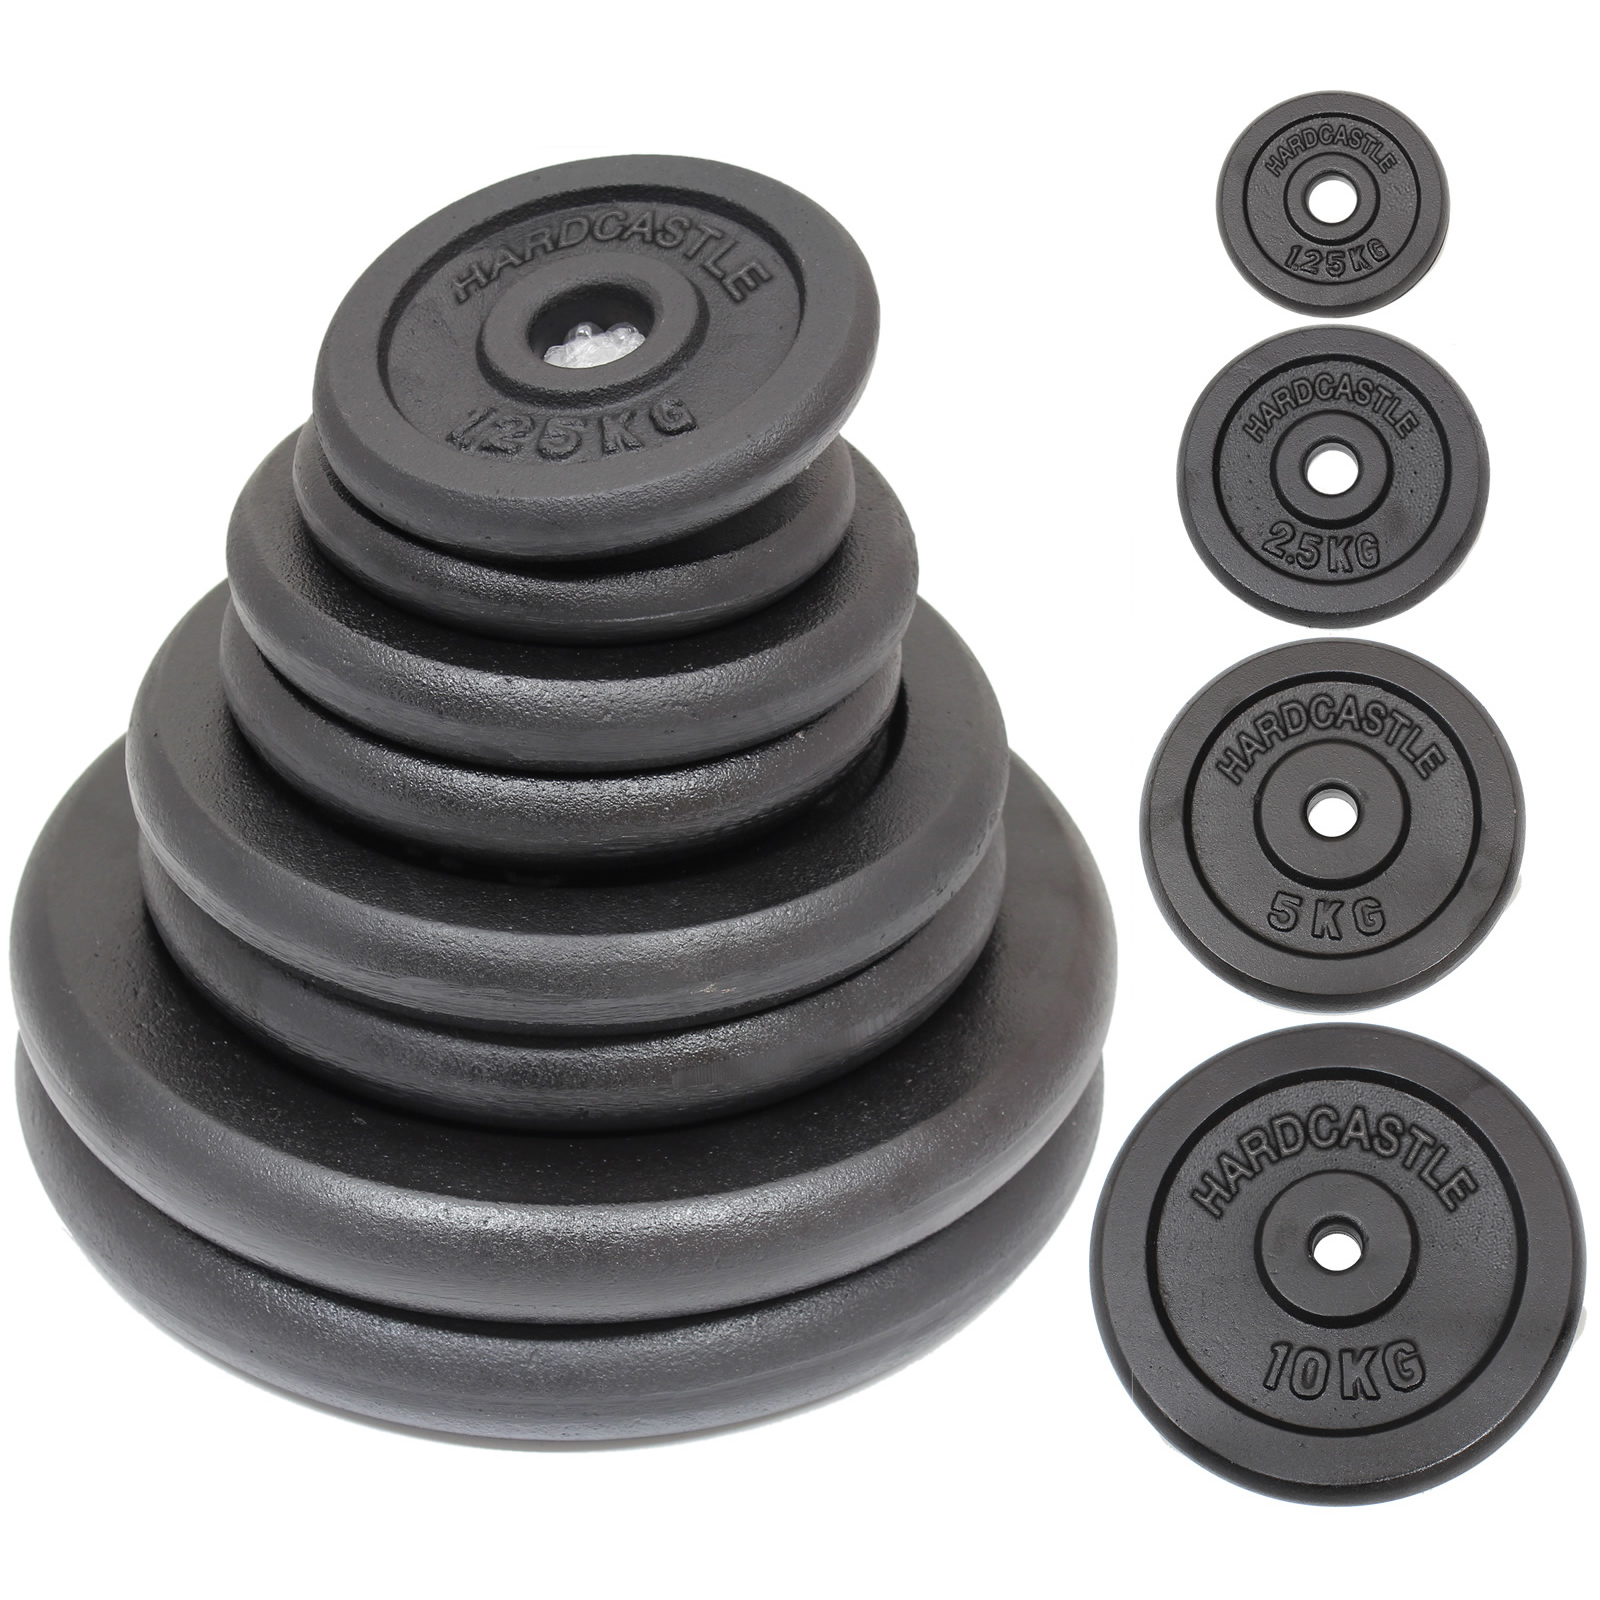 CAST-IRON-WEIGHTS-STANDARD-1-034-HOLE-HOME-GYM-WEIGHT-PLATES-DISCS-TRAINING-LIFTING thumbnail 11